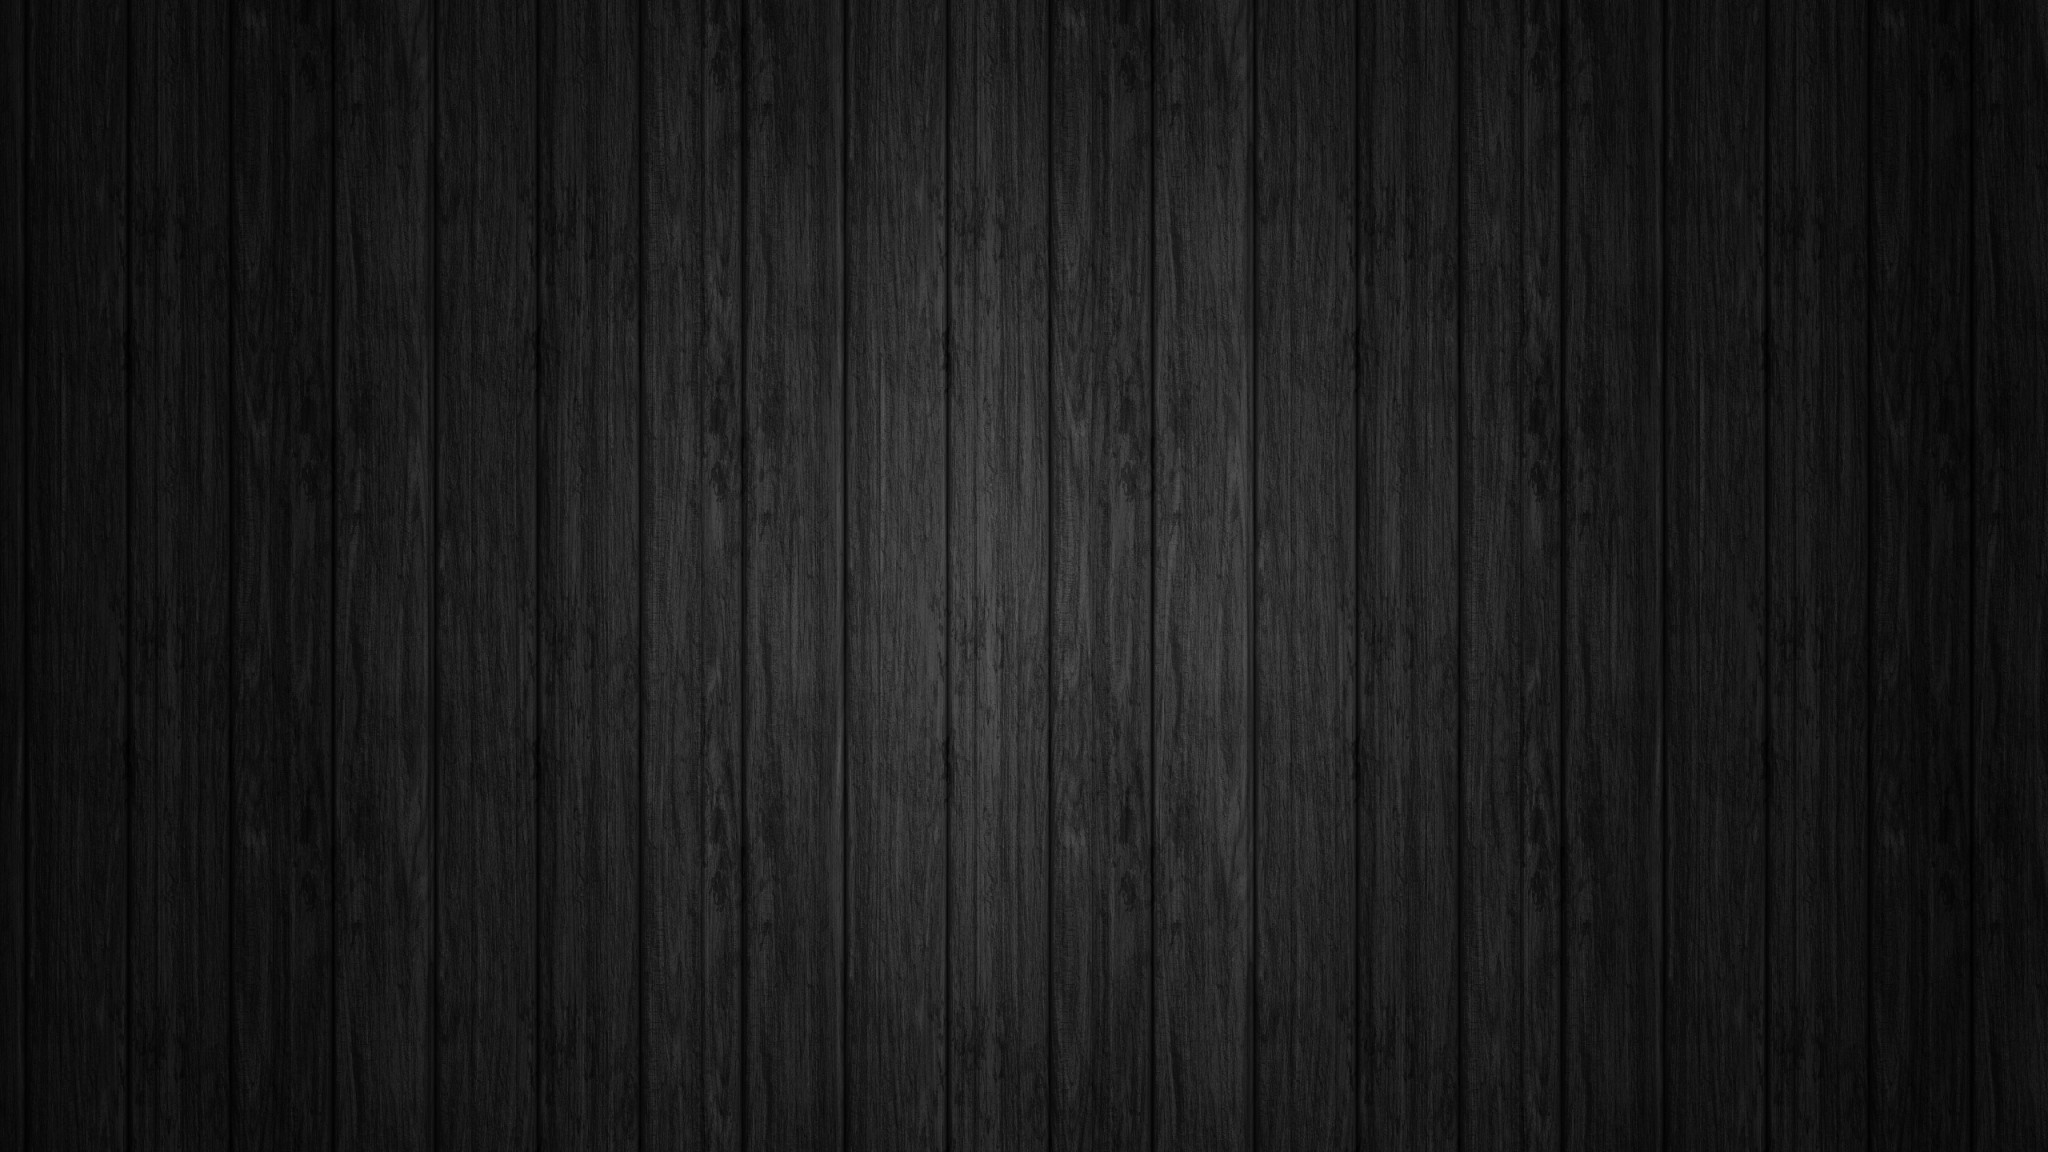 2048x1152 Preview wallpaper board, black, line, texture, background, wood